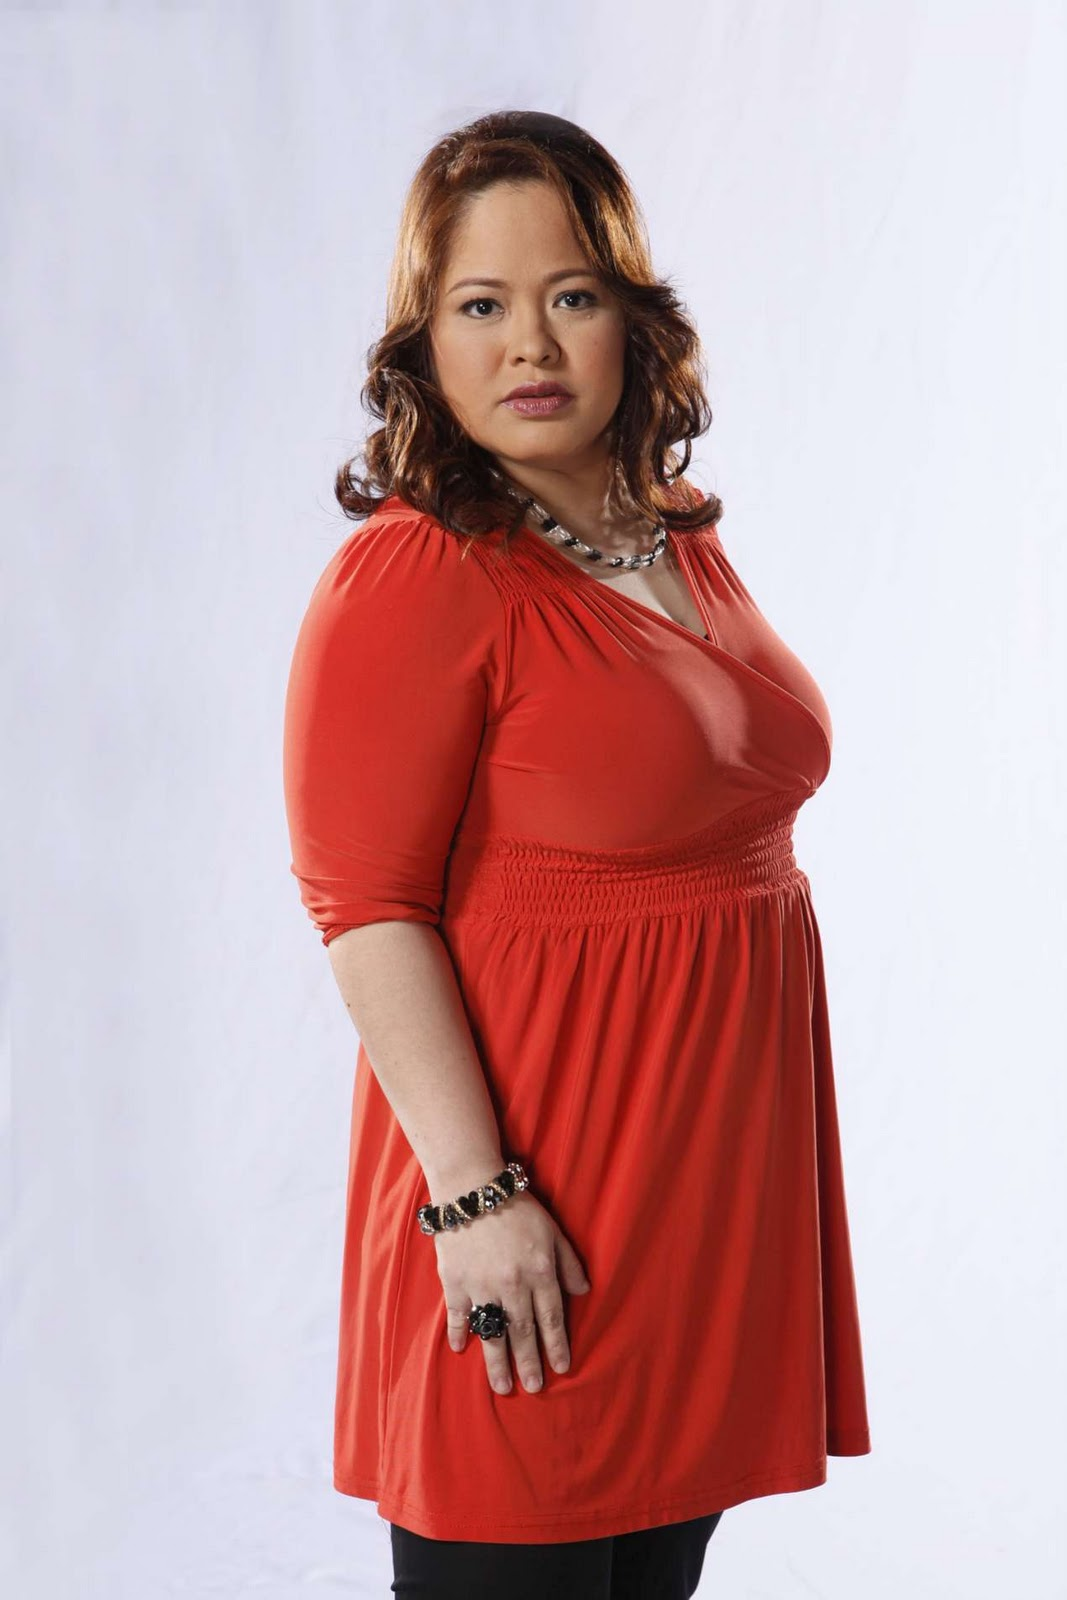 Manilyn Reynes No Longer Wants To Have Another Child After